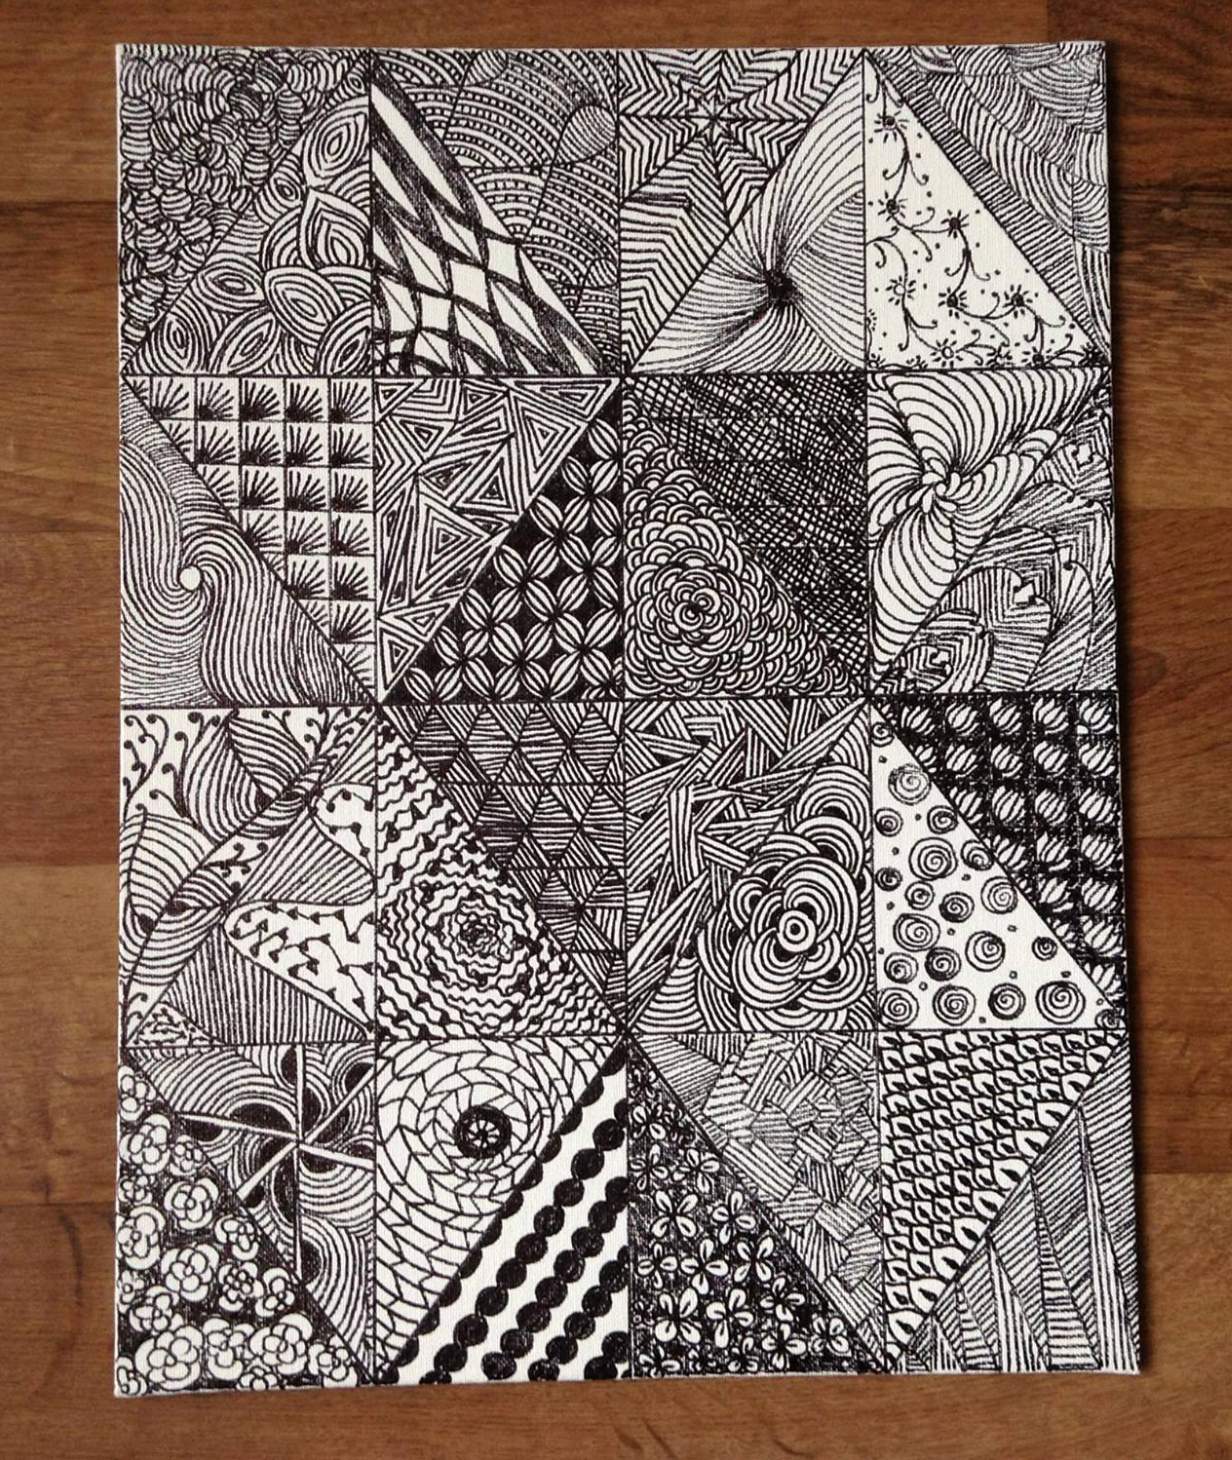 Relax With Yoga Nidra Zentangle Virtual Program Cozby Library And Community Commons